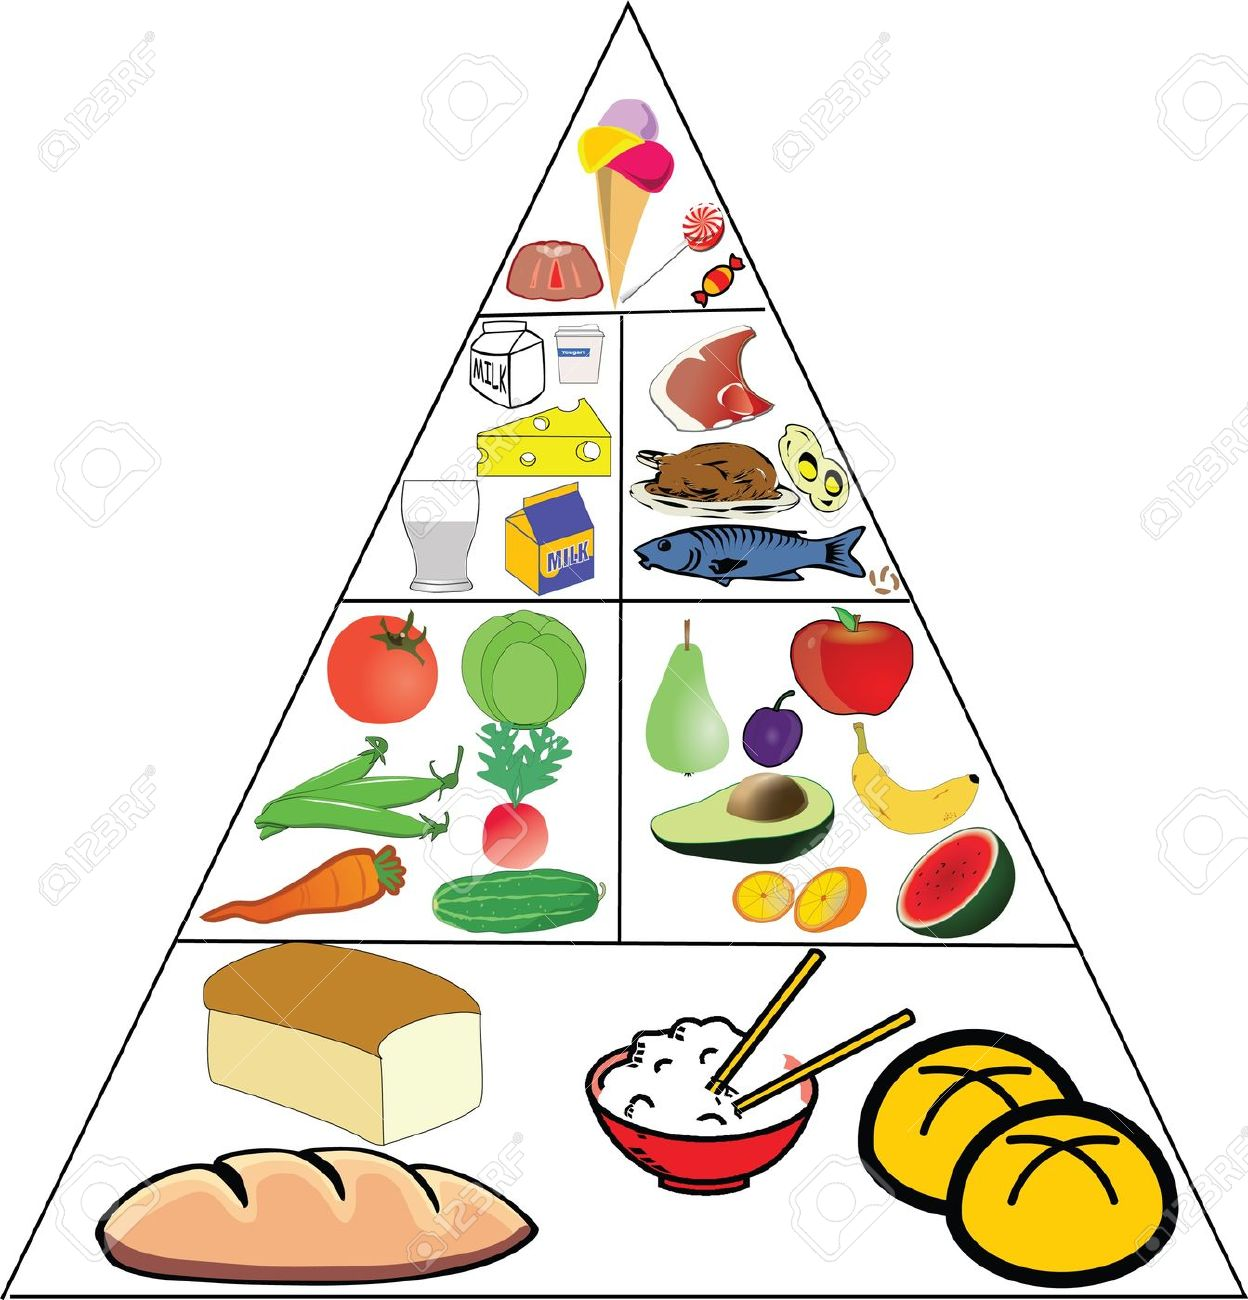 hight resolution of images nutrition pyramid clipart